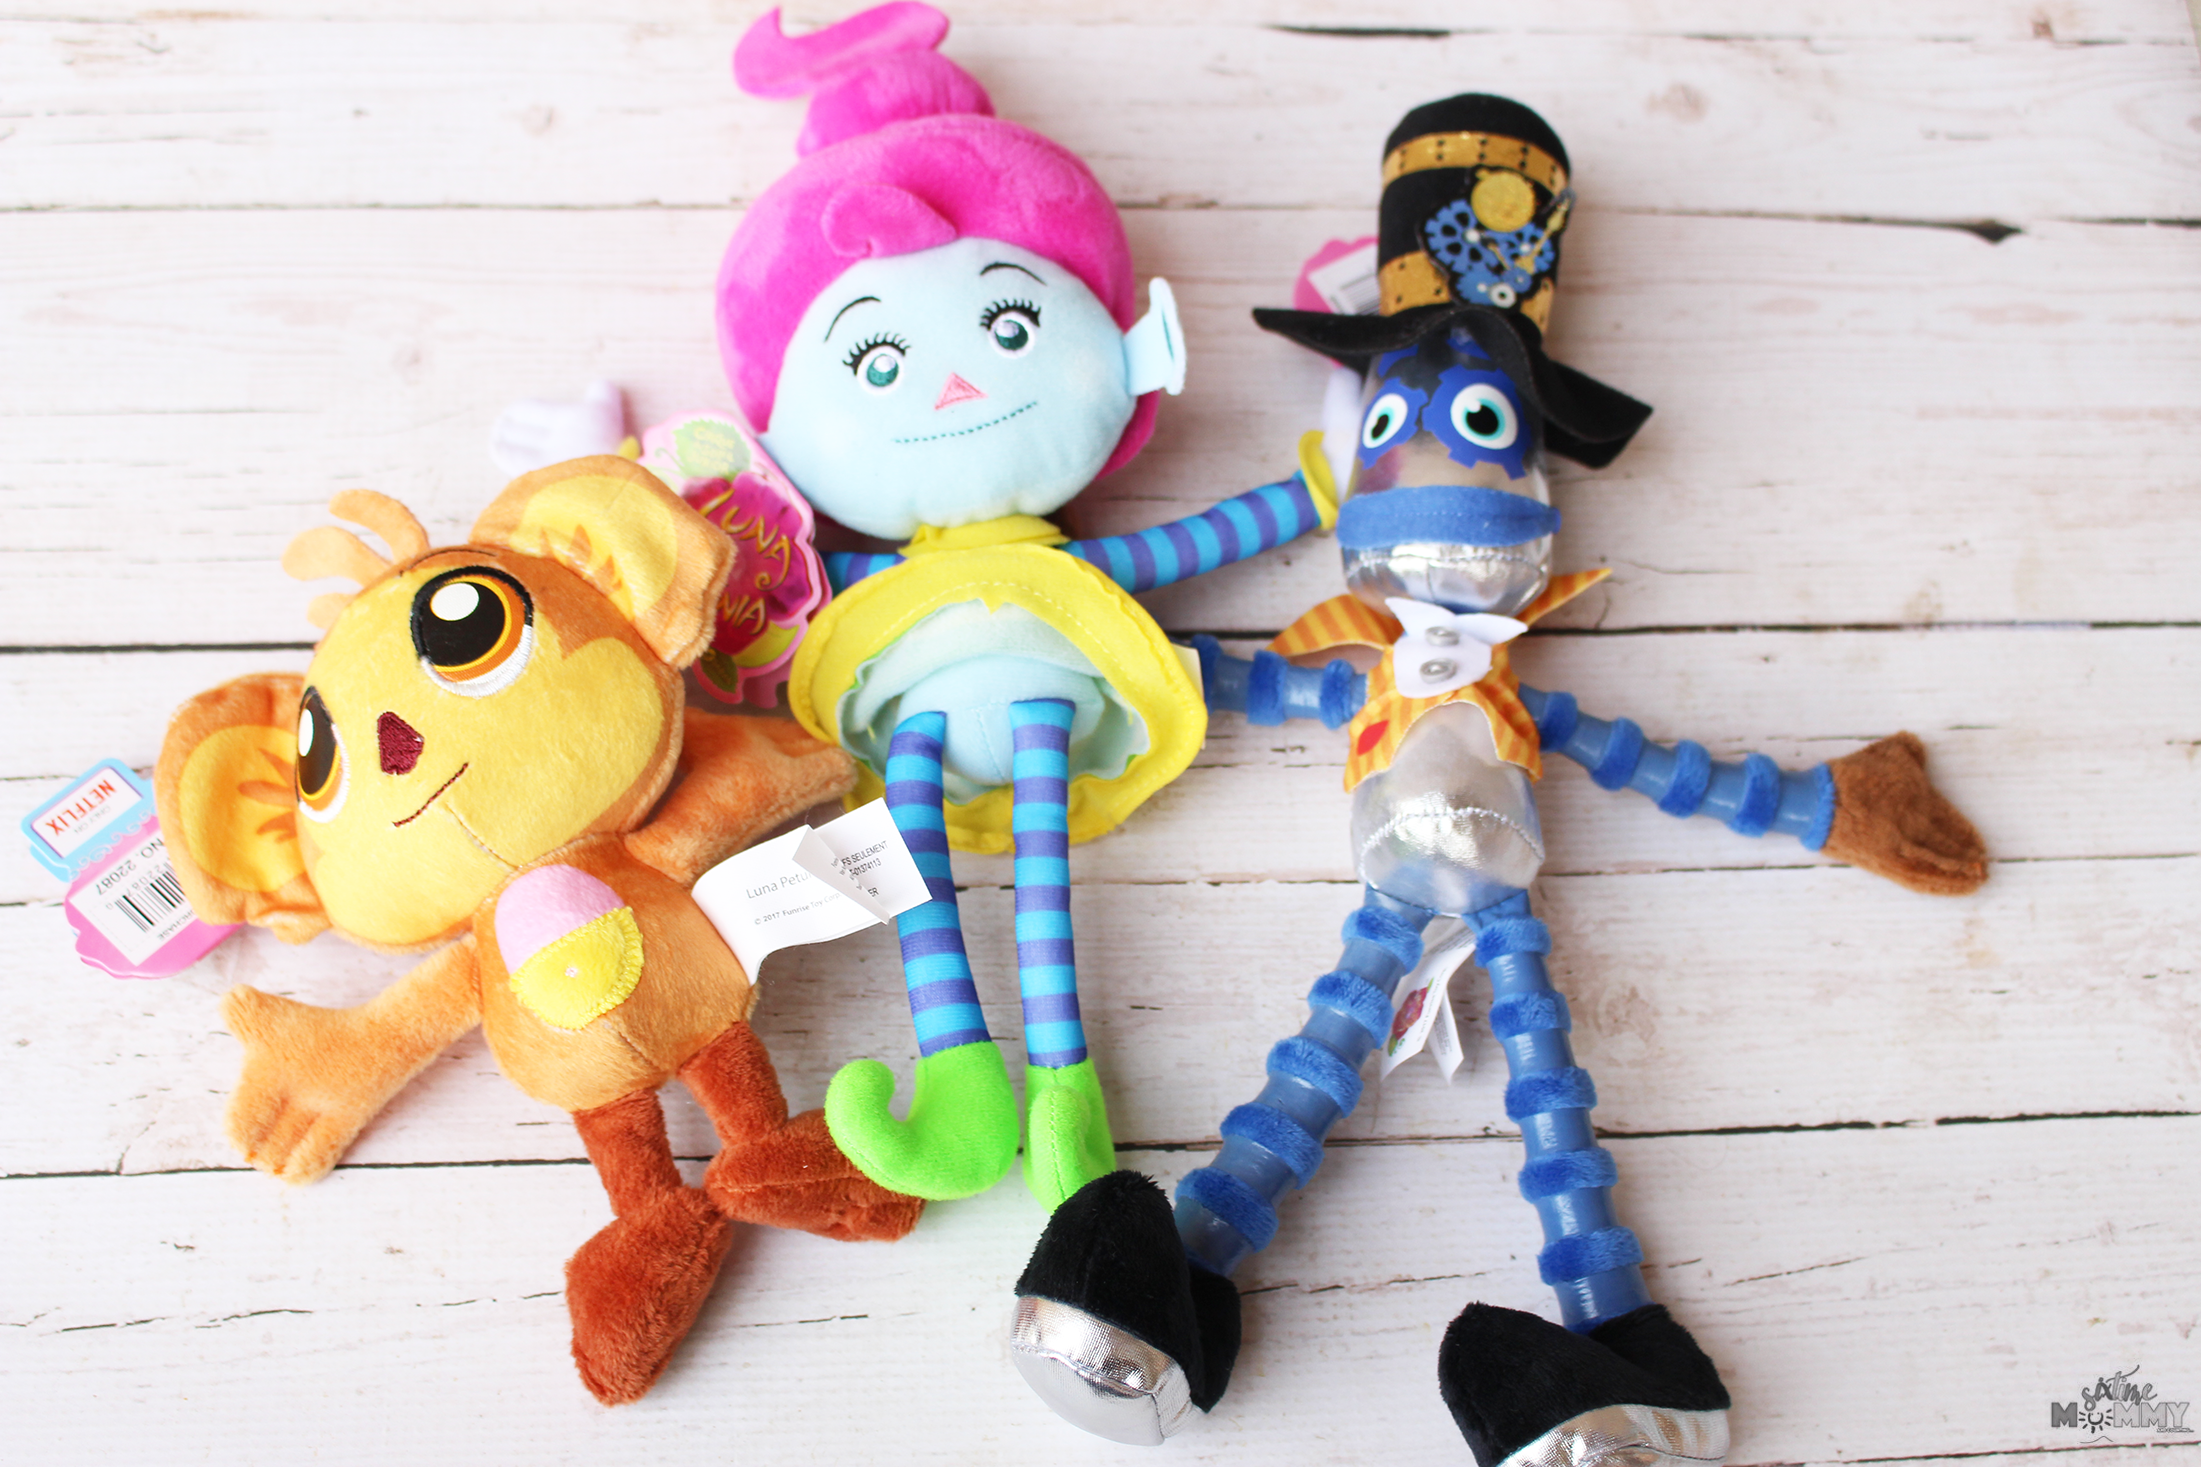 Fun With Luna Petunia Dolls and Playsets!